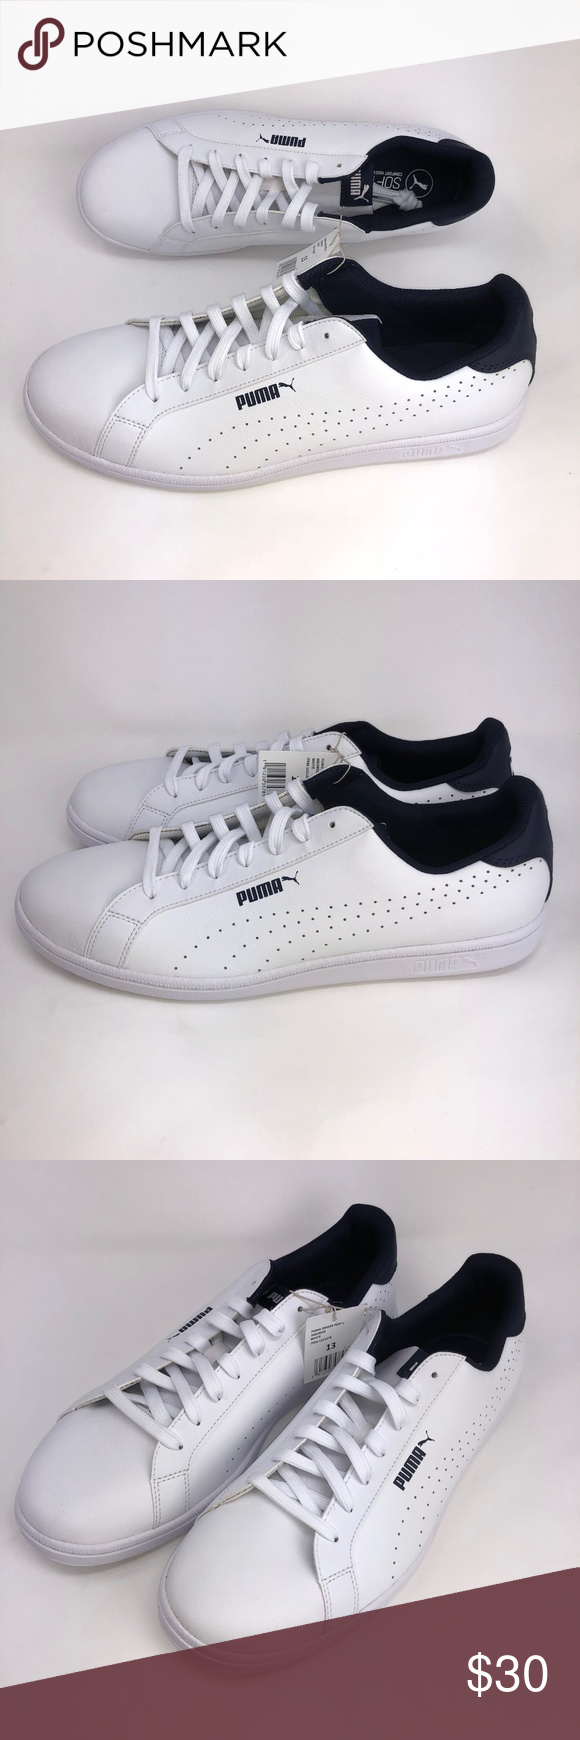 Puma Smash Perf C Men s Sneaker Tennis Shoes White Puma Smash Perf C Men s Sneaker  Classic cedc8b396